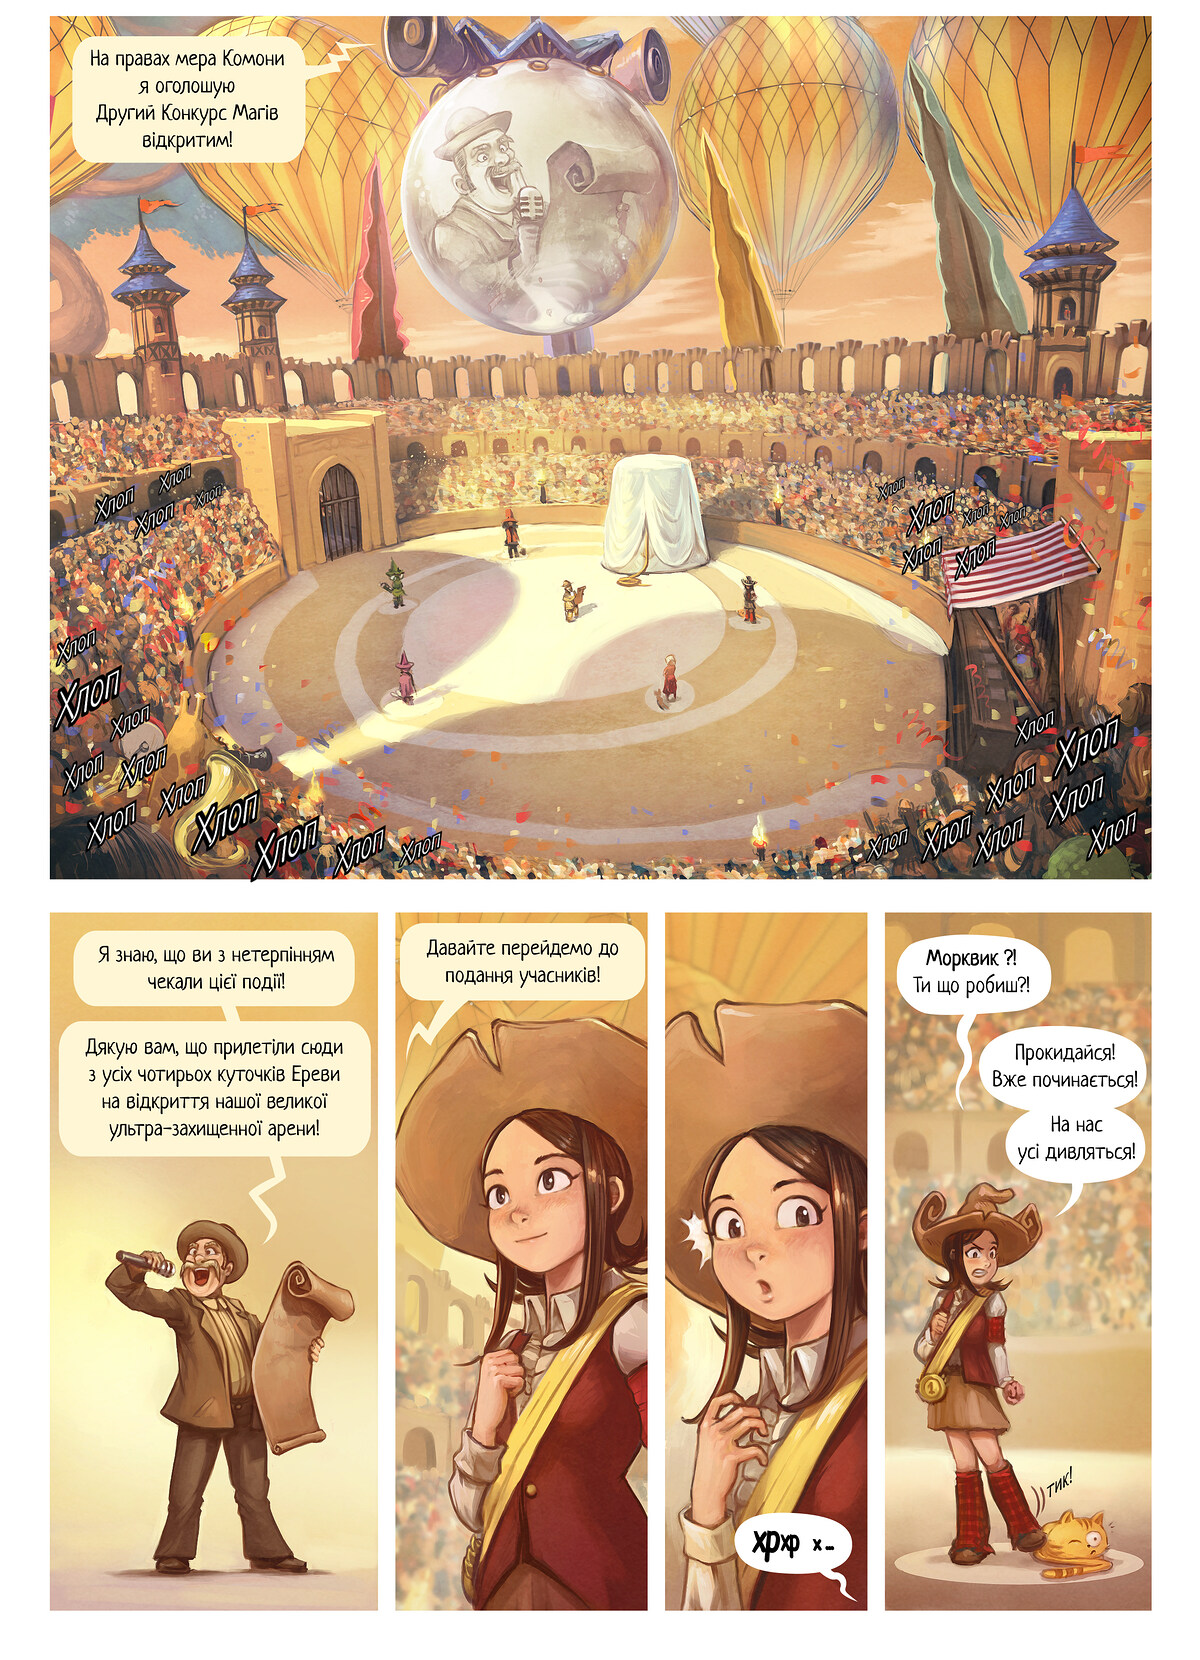 A webcomic page of Pepper&Carrot, епізод 21 [uk], стор. 3